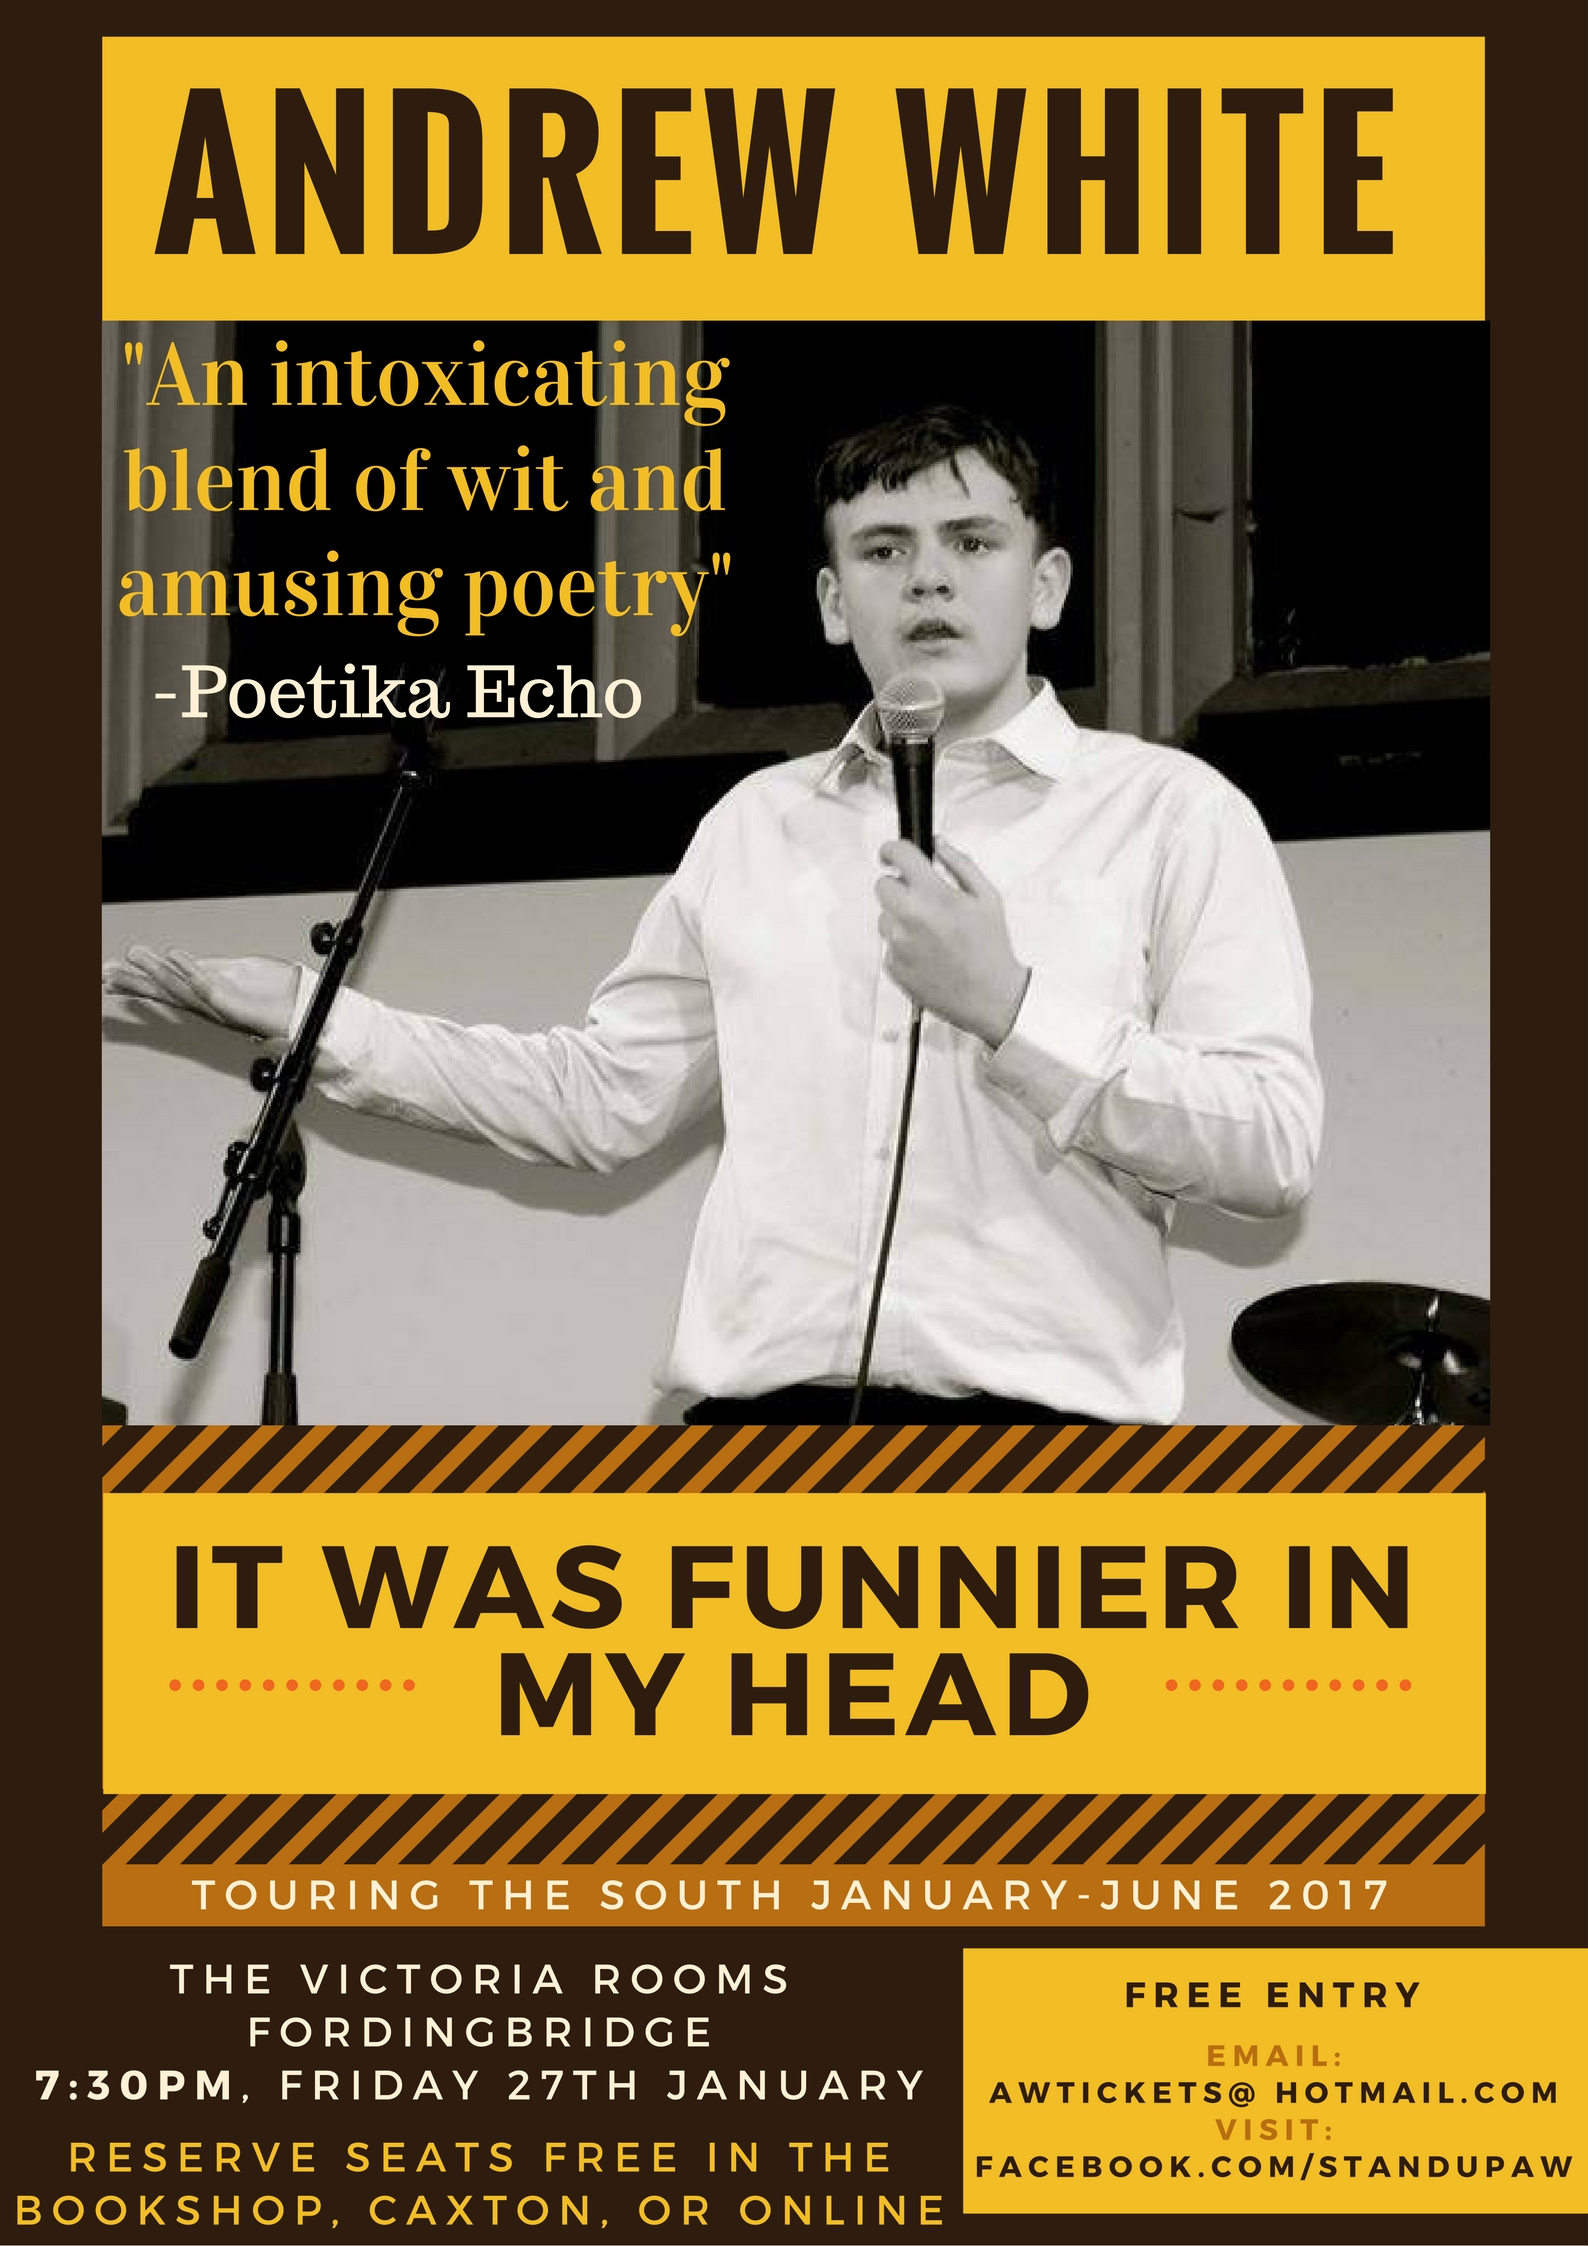 Andrew White - It Was Funnier In My Head